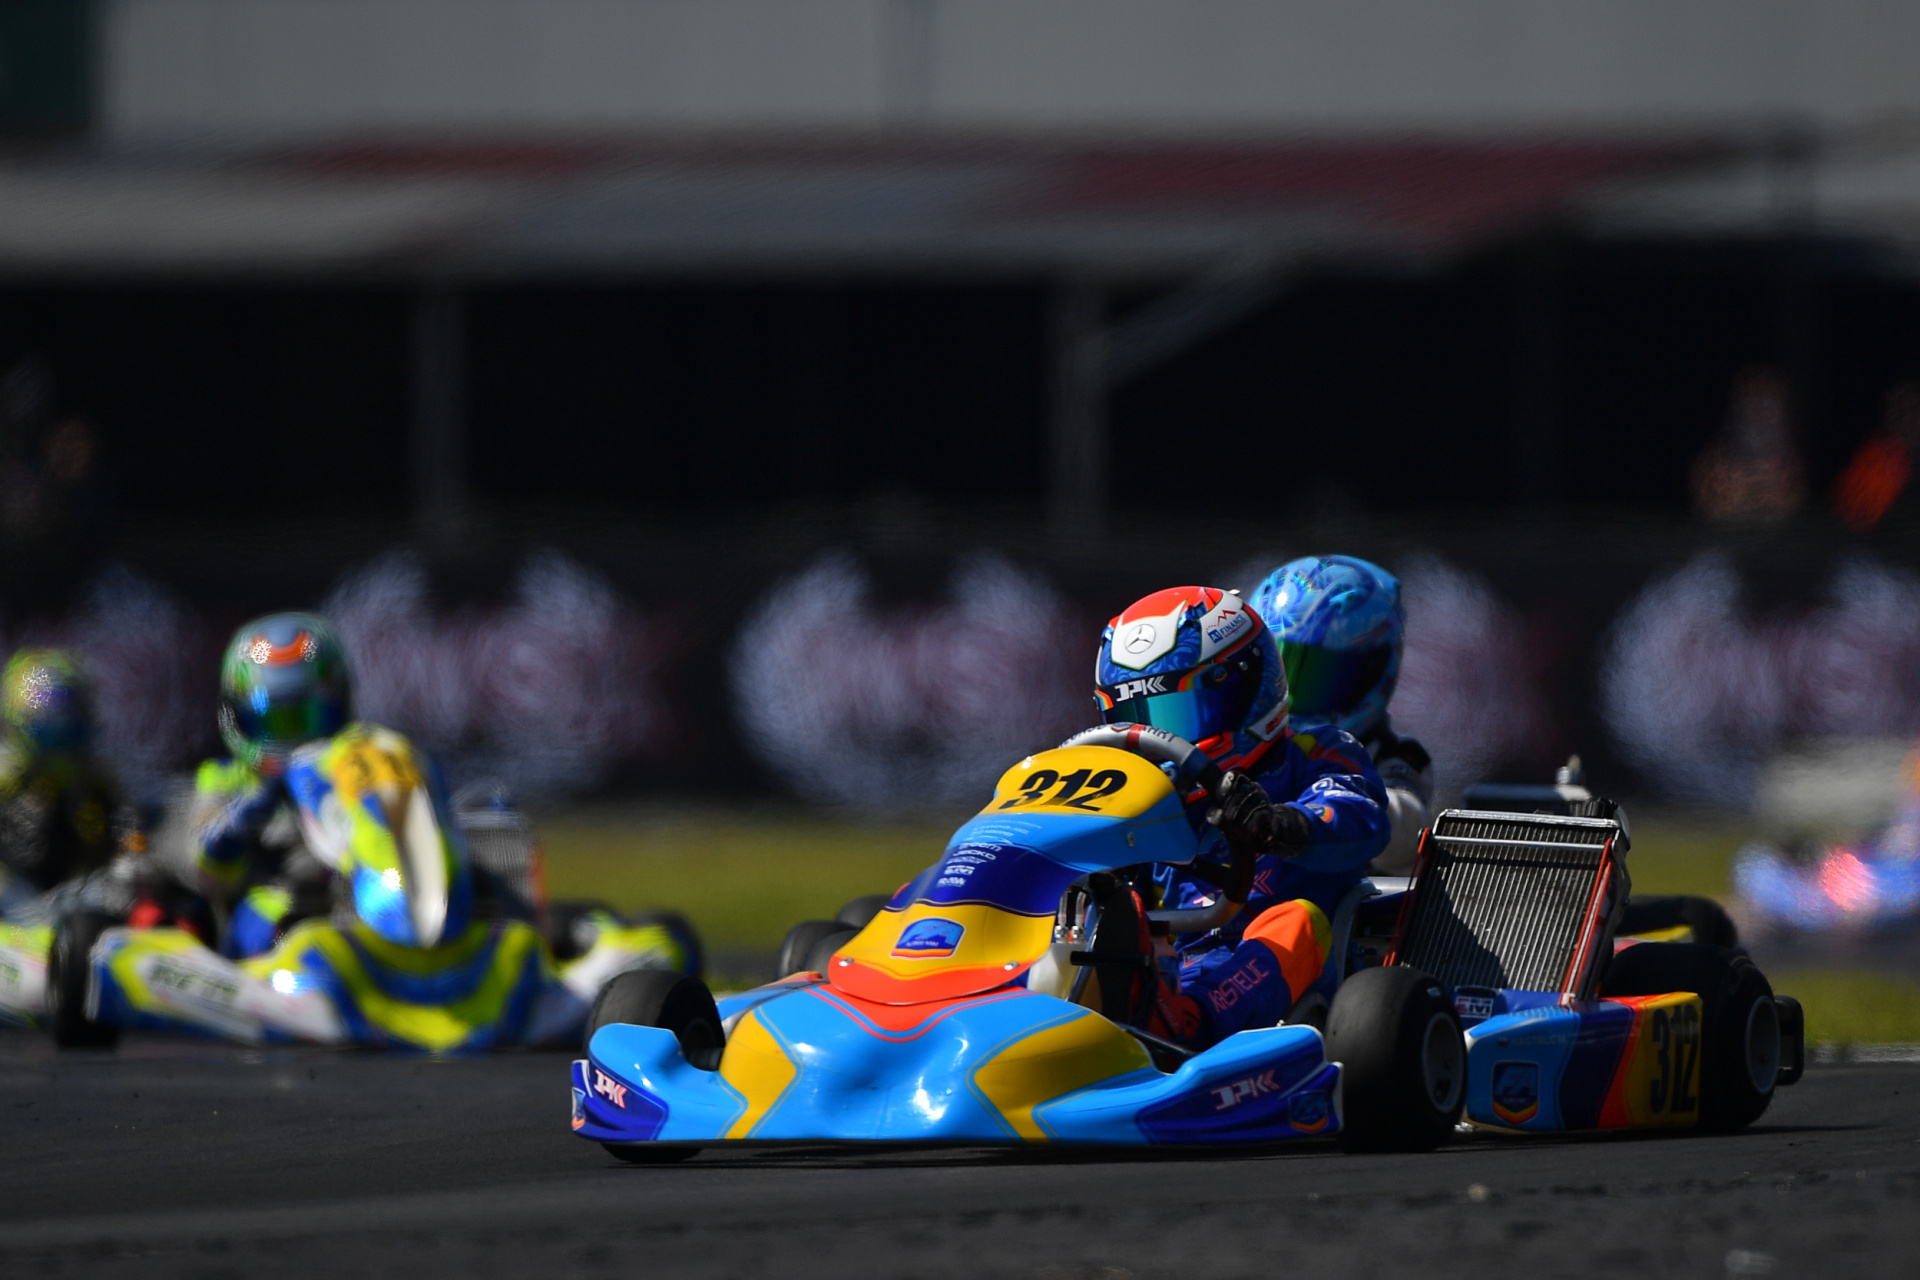 The first round of the WSK Euro Series awaits Mark Kastelic